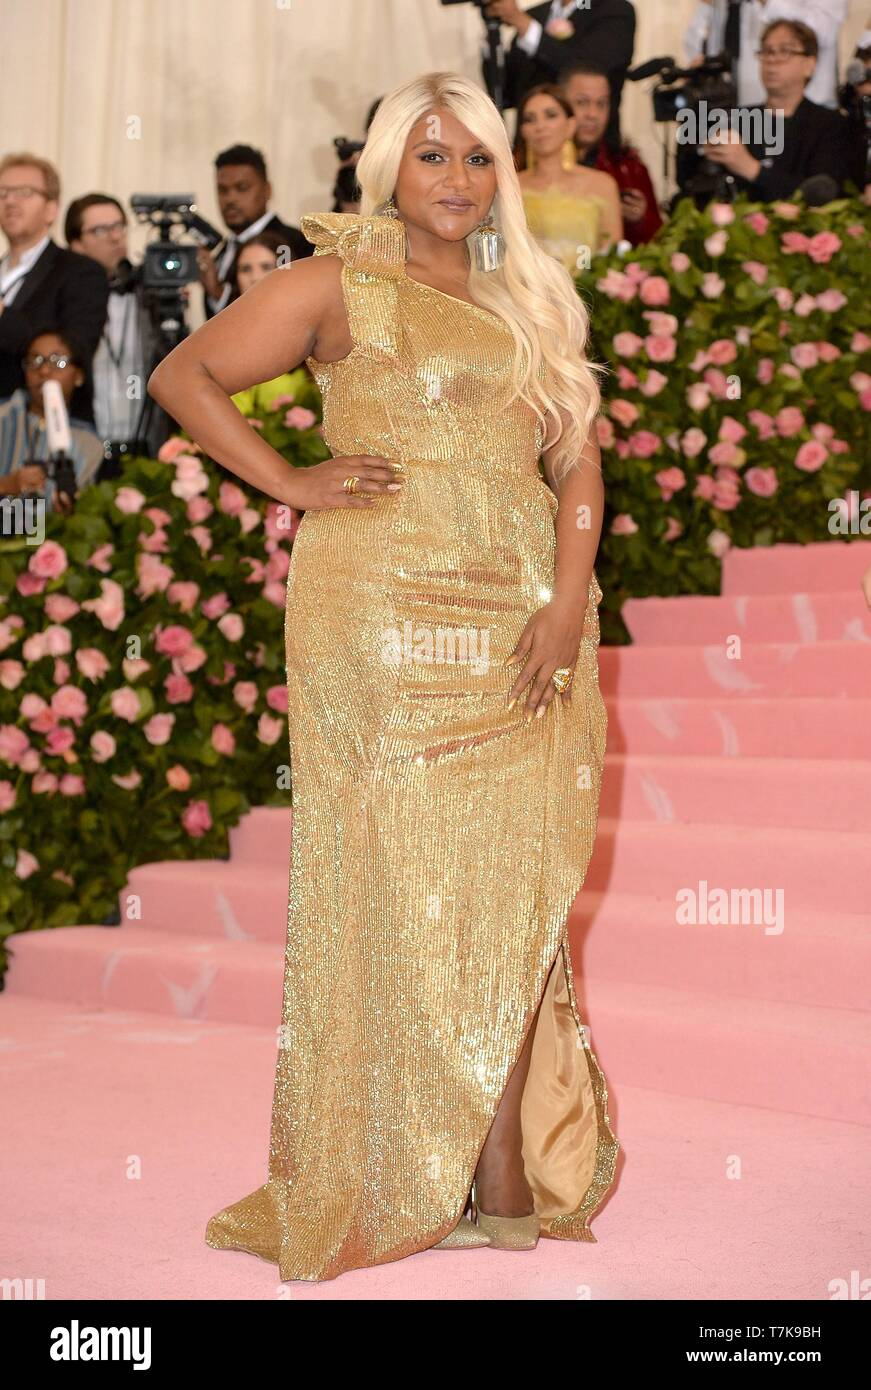 New York Ny Usa 6th May 2019 Mindy Kaling At Arrivals For Camp Notes On Fashion Met Gala Costume Institute Annual Benefit Part 5 Metropolitan Museum Of Art New York Ny